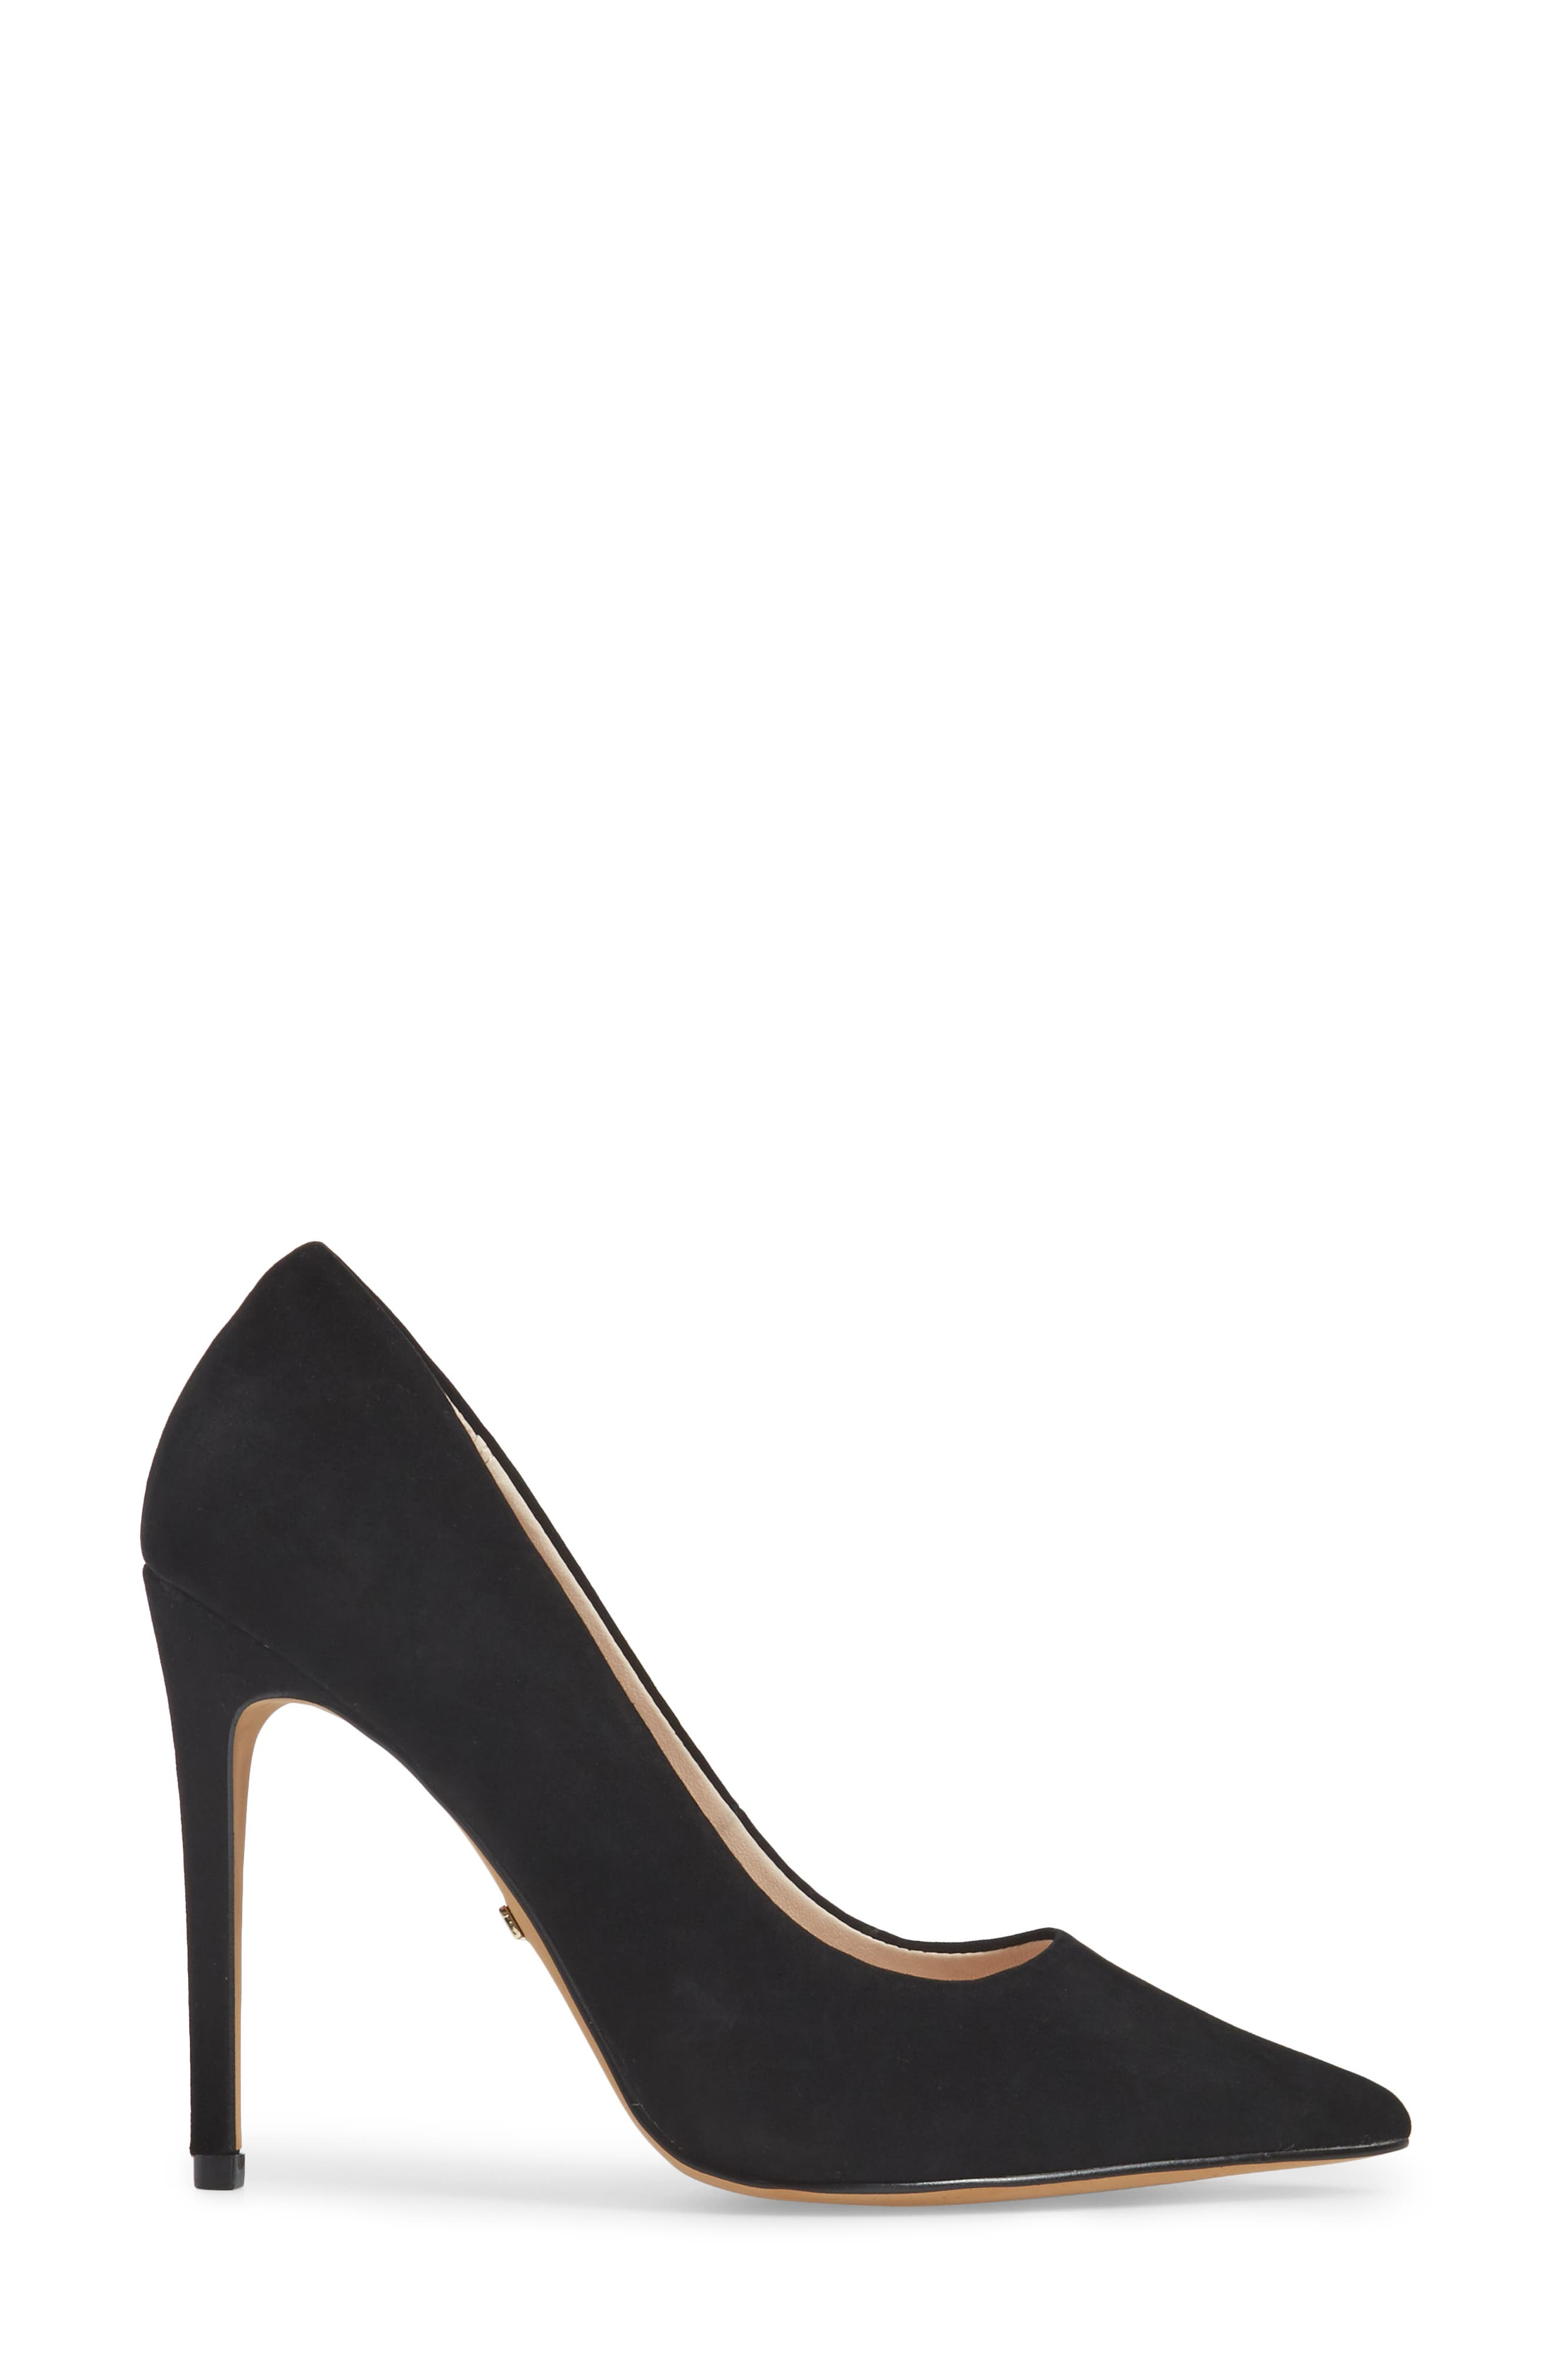 Grammer Pointy Toe Pump,                             Alternate thumbnail 3, color,                             BLACK LEATHER